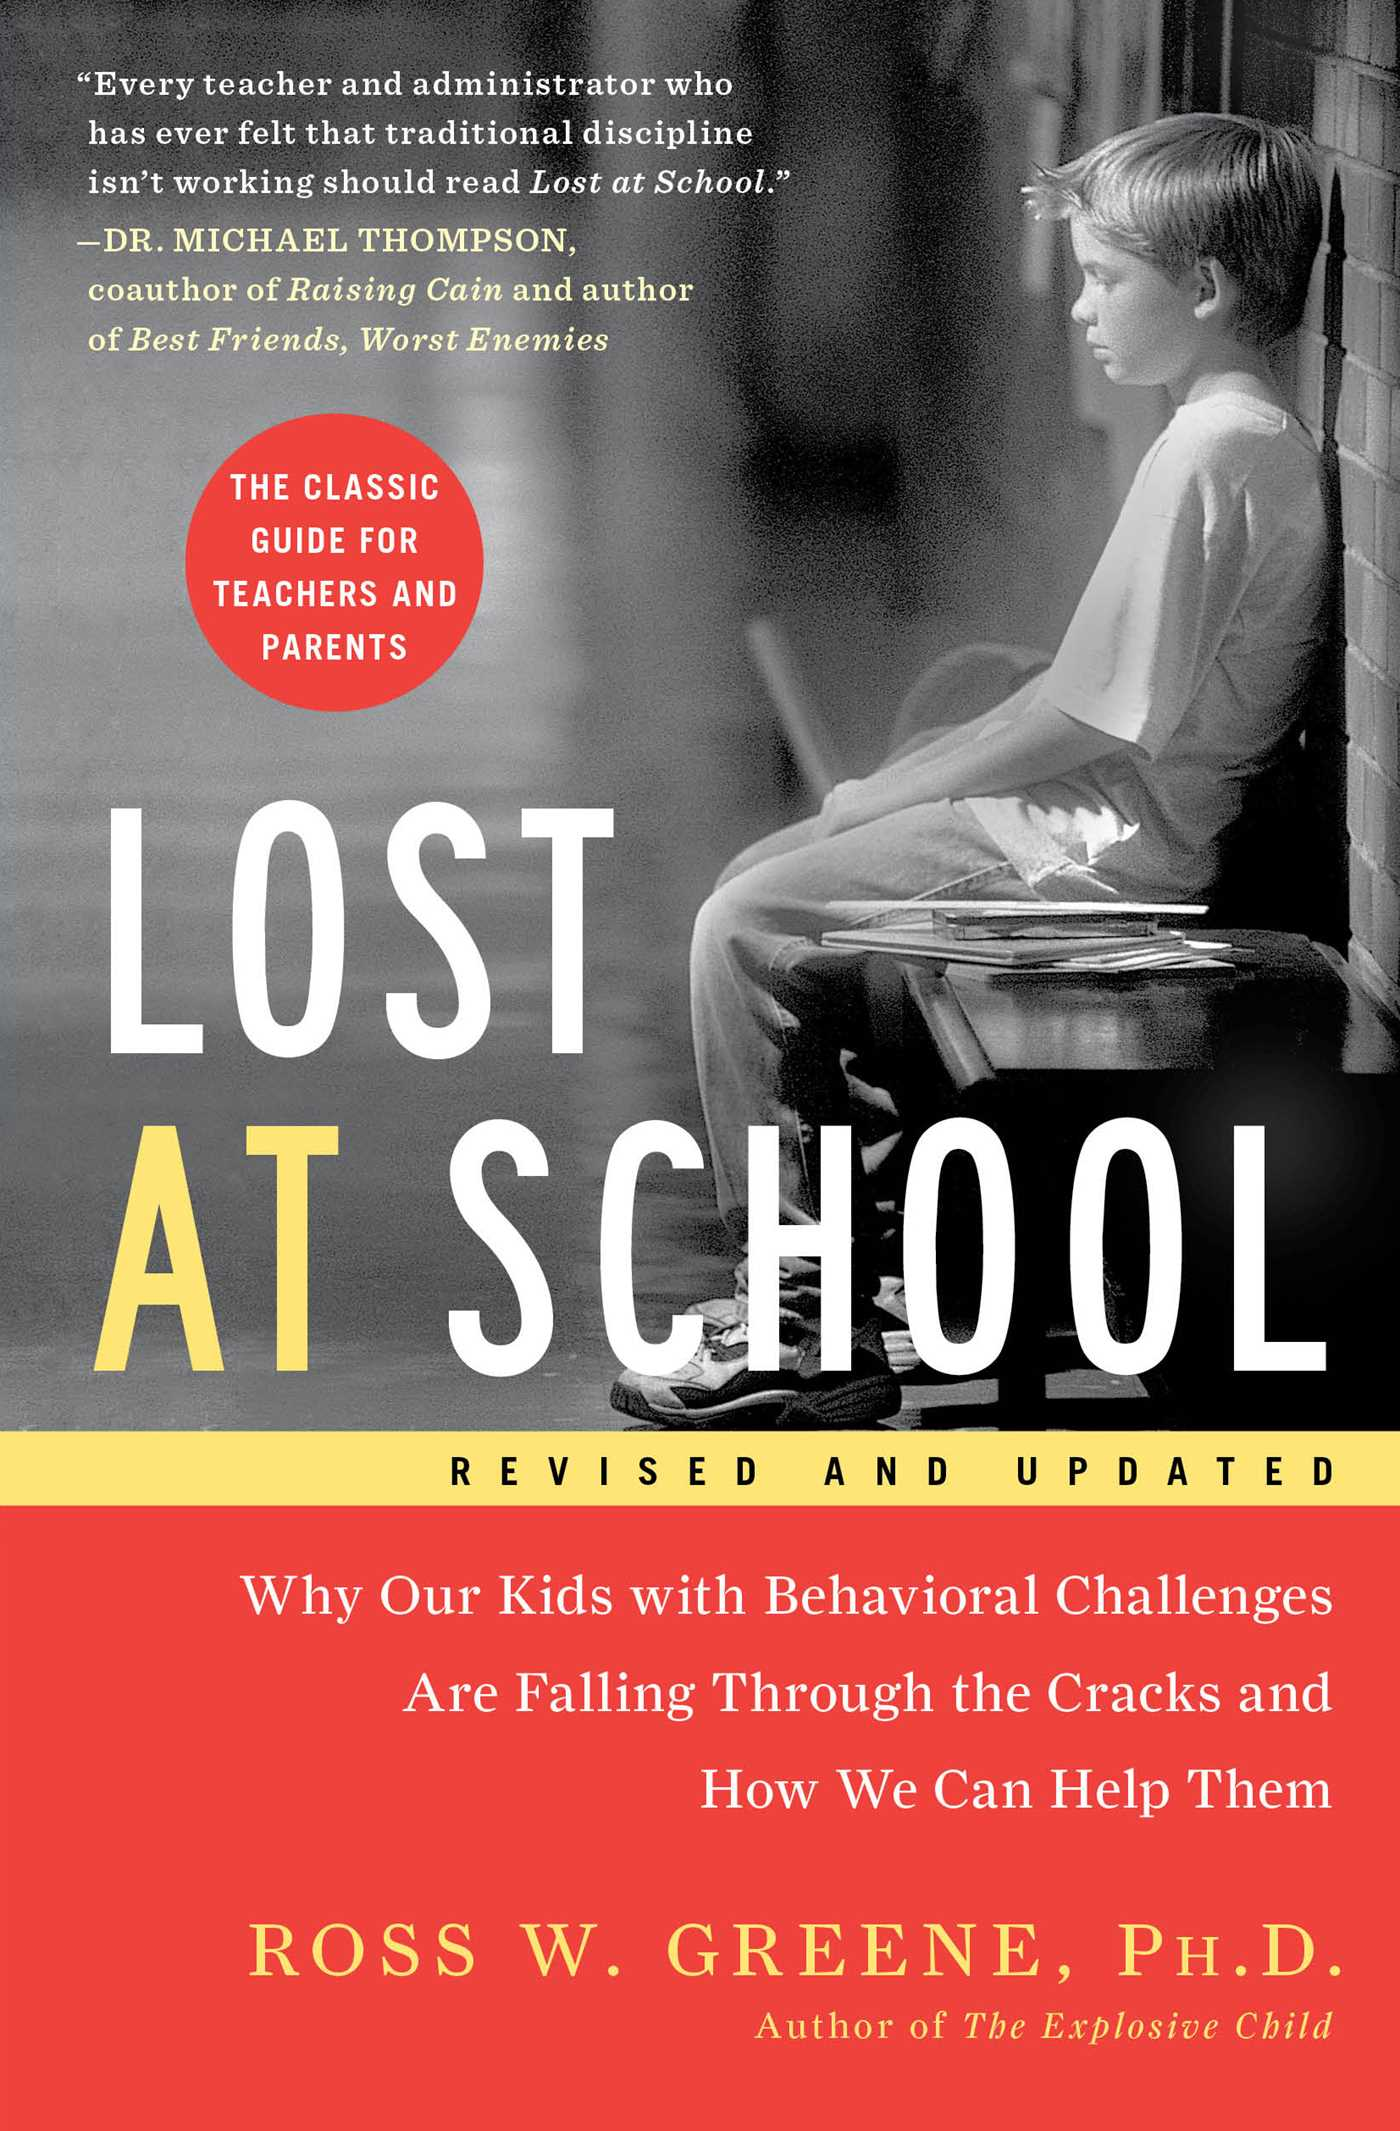 Lost At School -Ross Greene - This book supports working with people, especially children, in a proactive and collaborative way that results in learning and growing from mistakes.